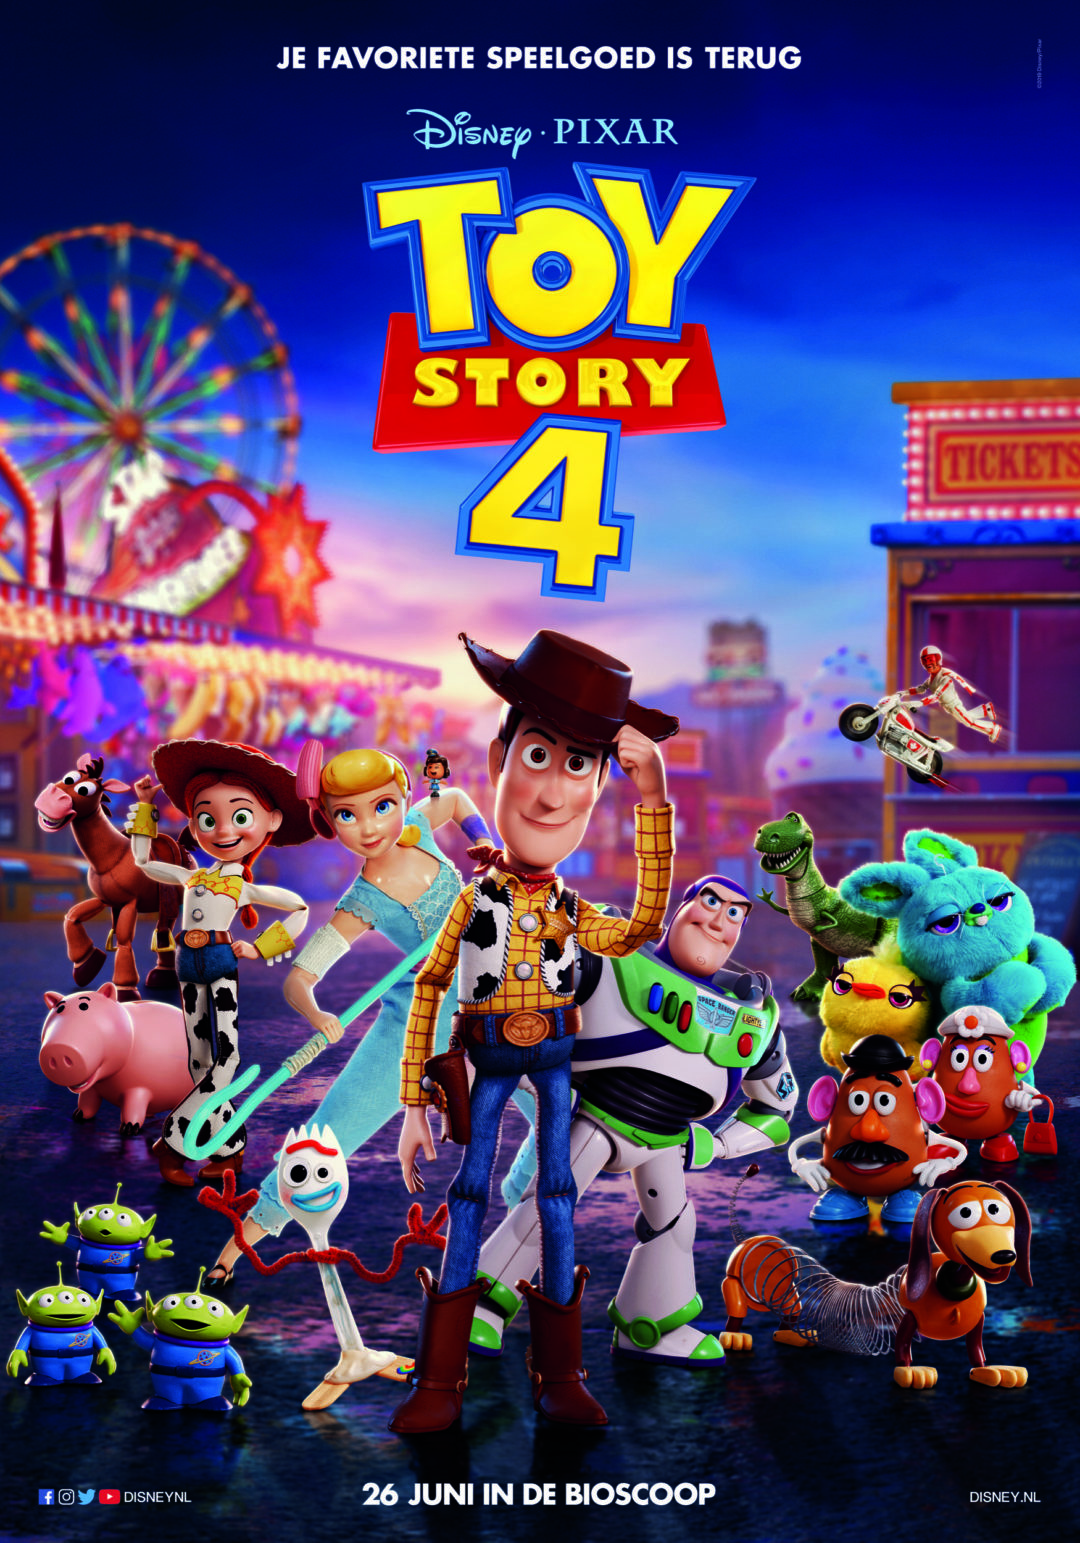 Toy-story-4-NL-_ps_1_jpg_sd-high_COPYRIGHT2019-Disney-Pixar-All-Rights-Reserved.jpg